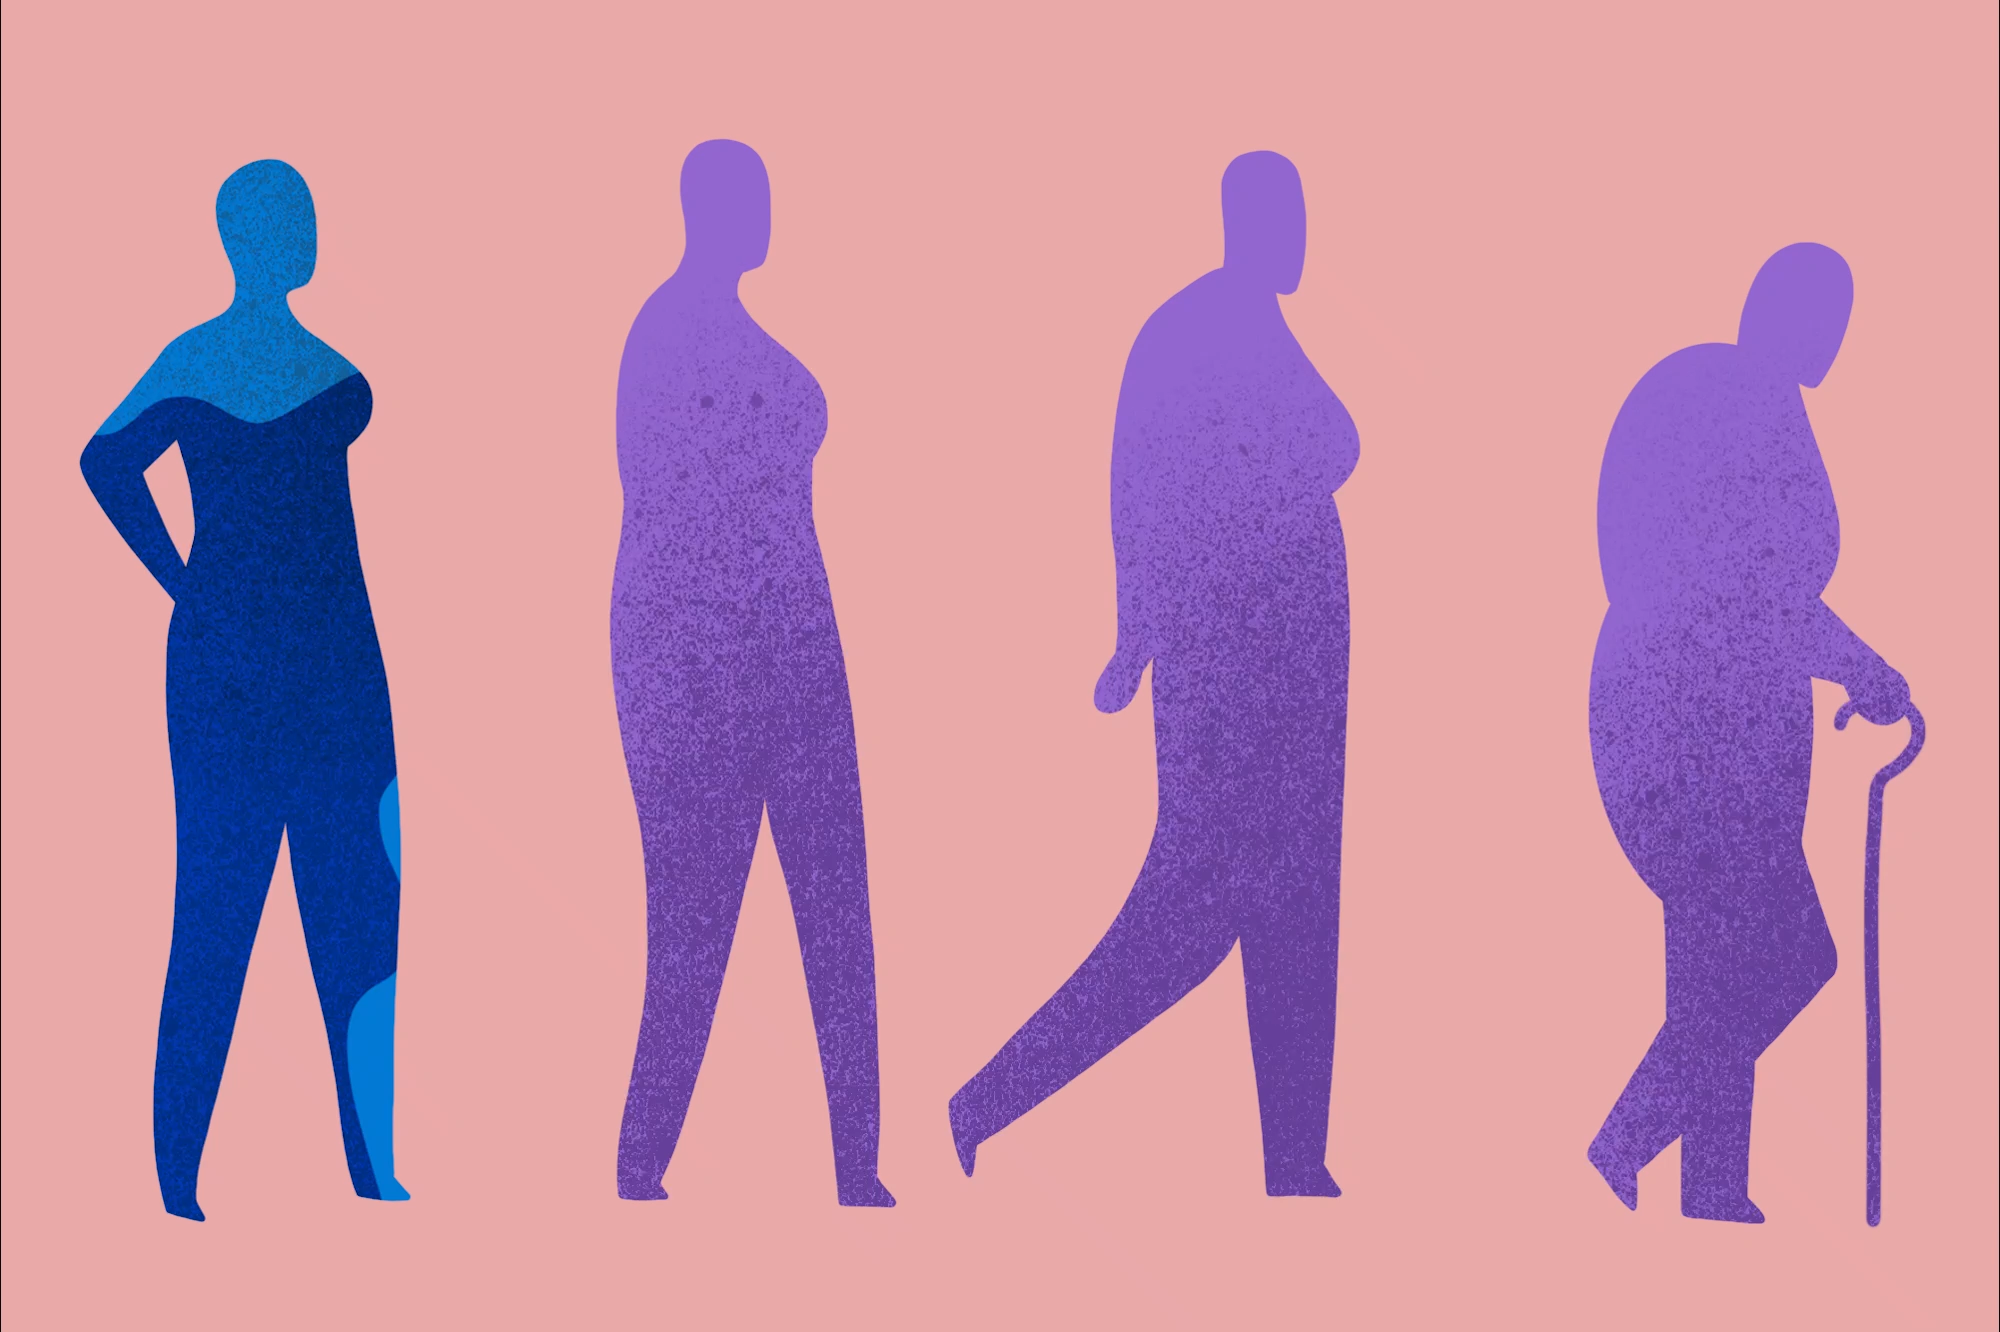 The silhouette of four people walking in a line in order of age